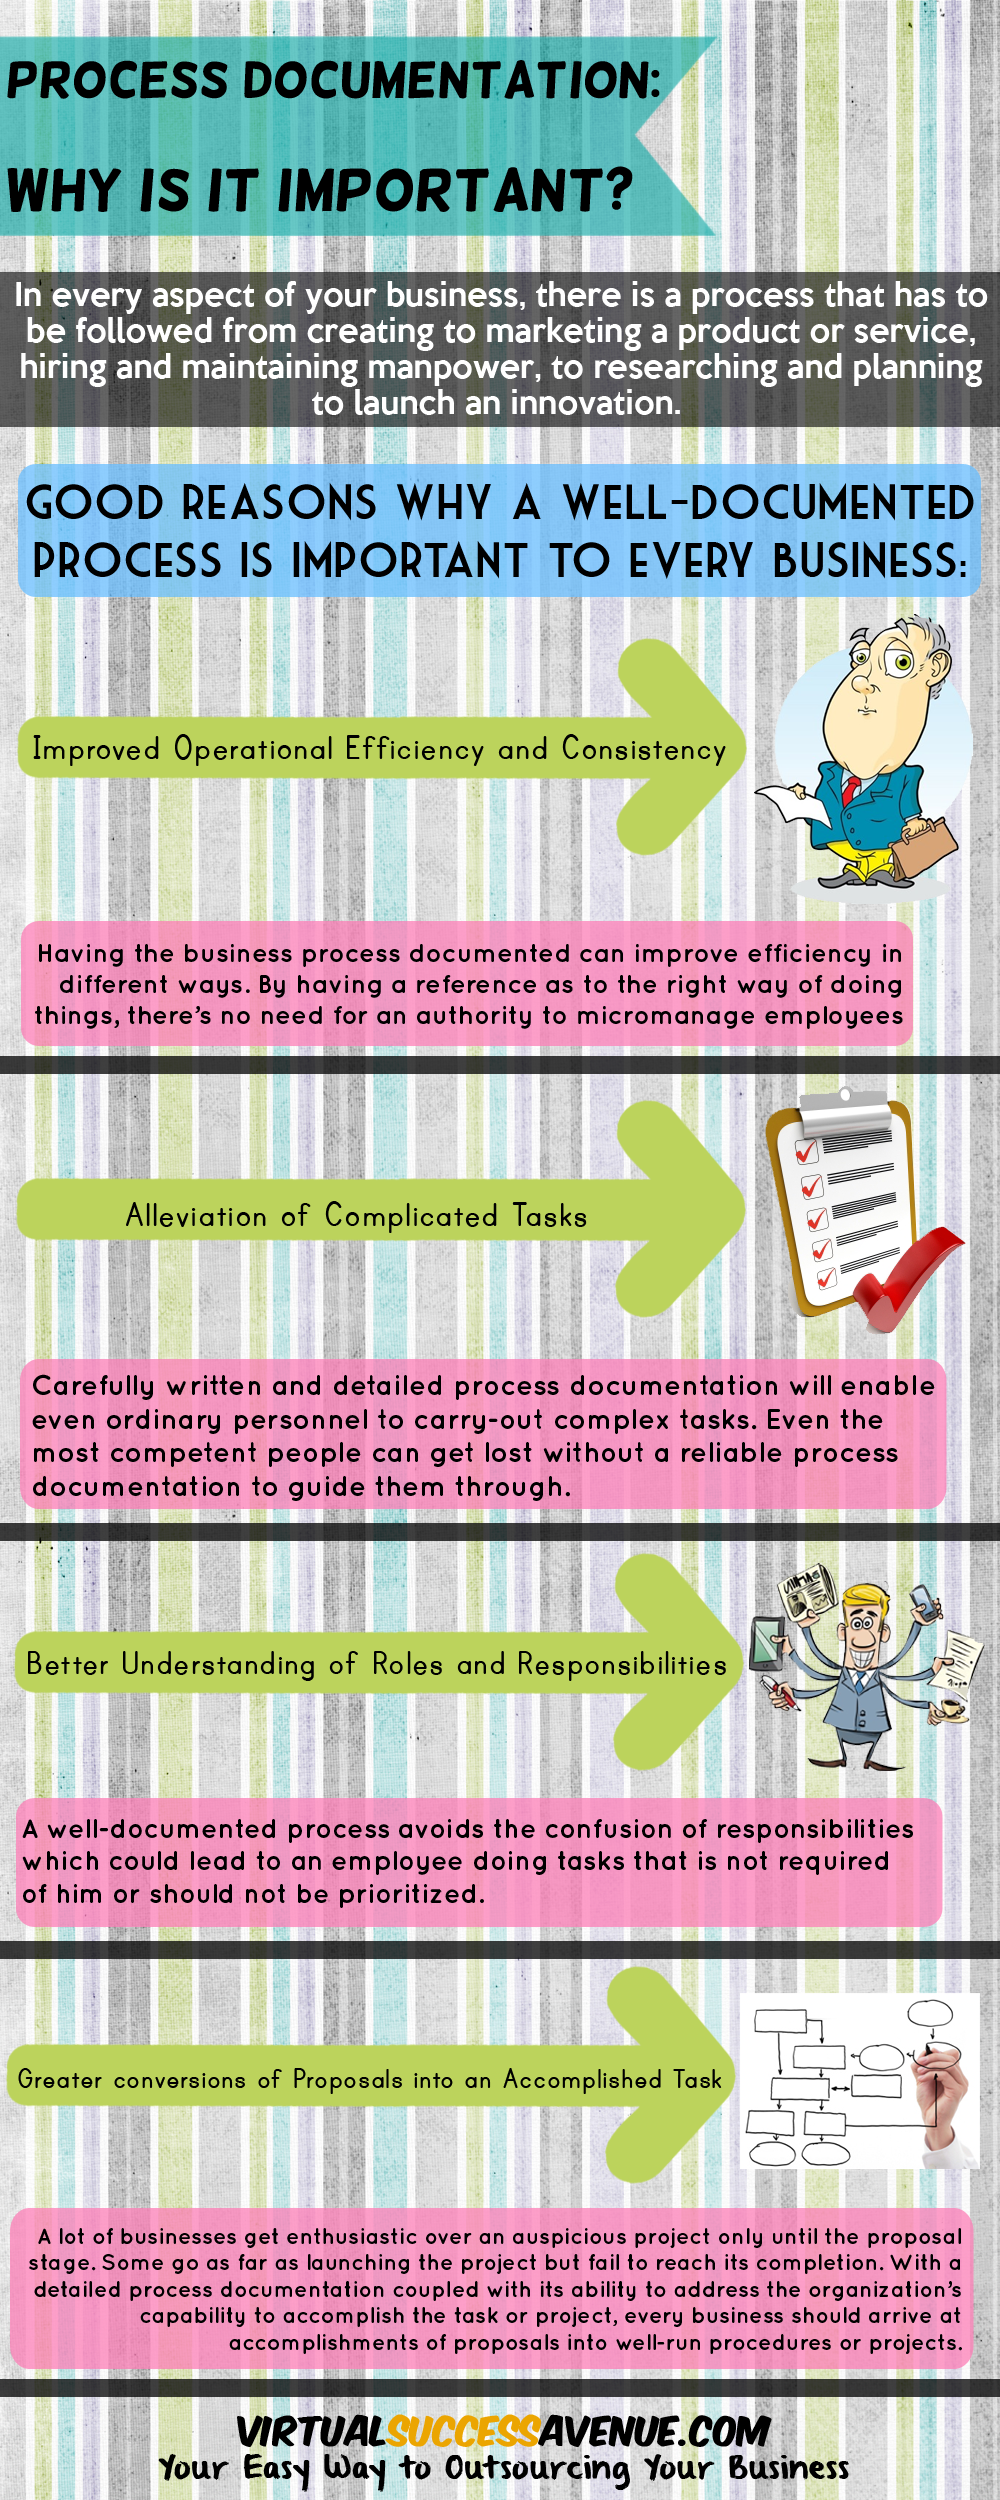 Why Is A Process Documentation Important VirtualAssistant Agile - Process documentation guide